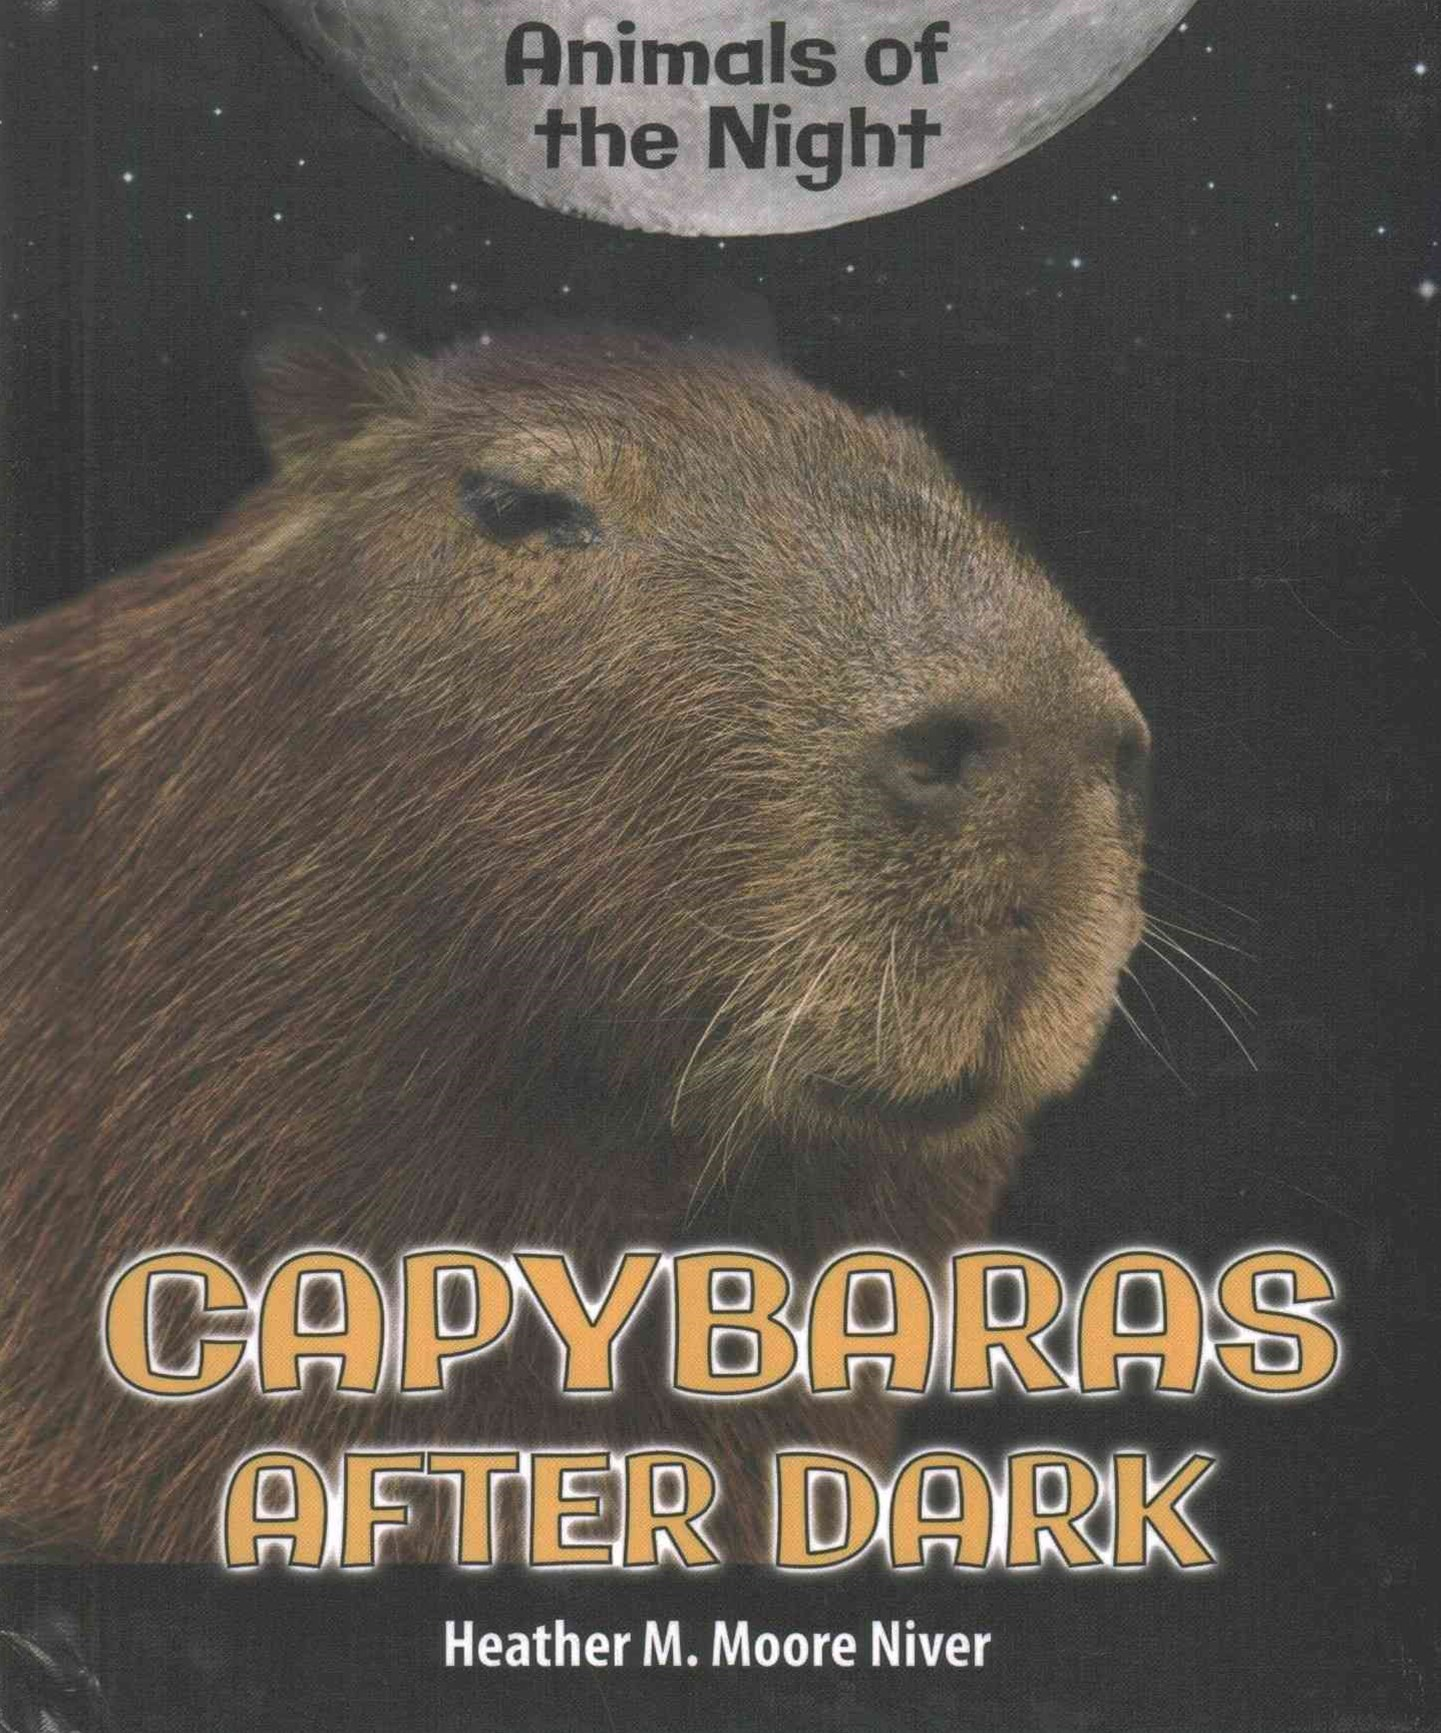 Capybaras after Dark